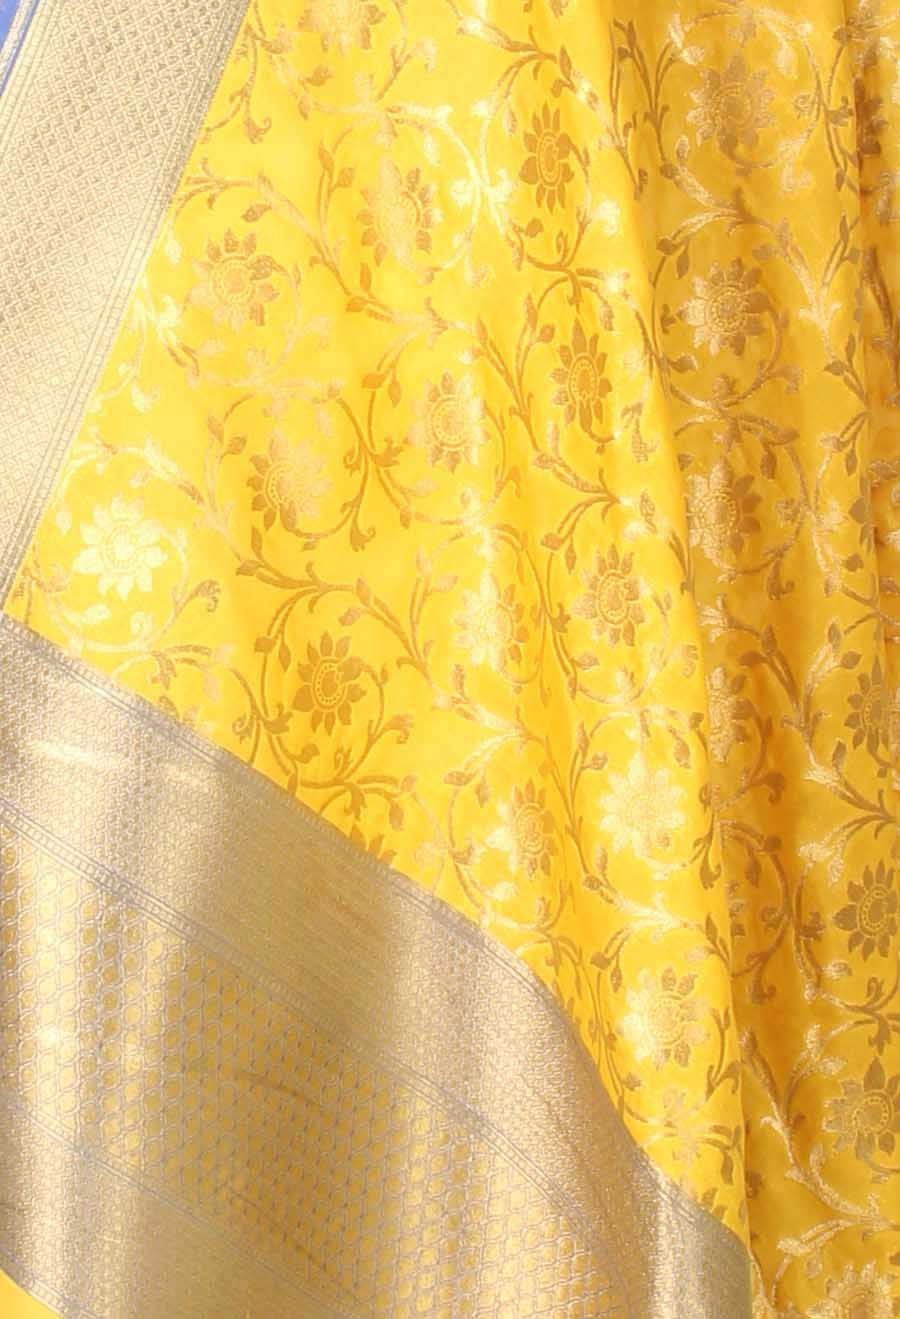 Yellow Banarasi dupatta with sunflower jaal (2) closeup